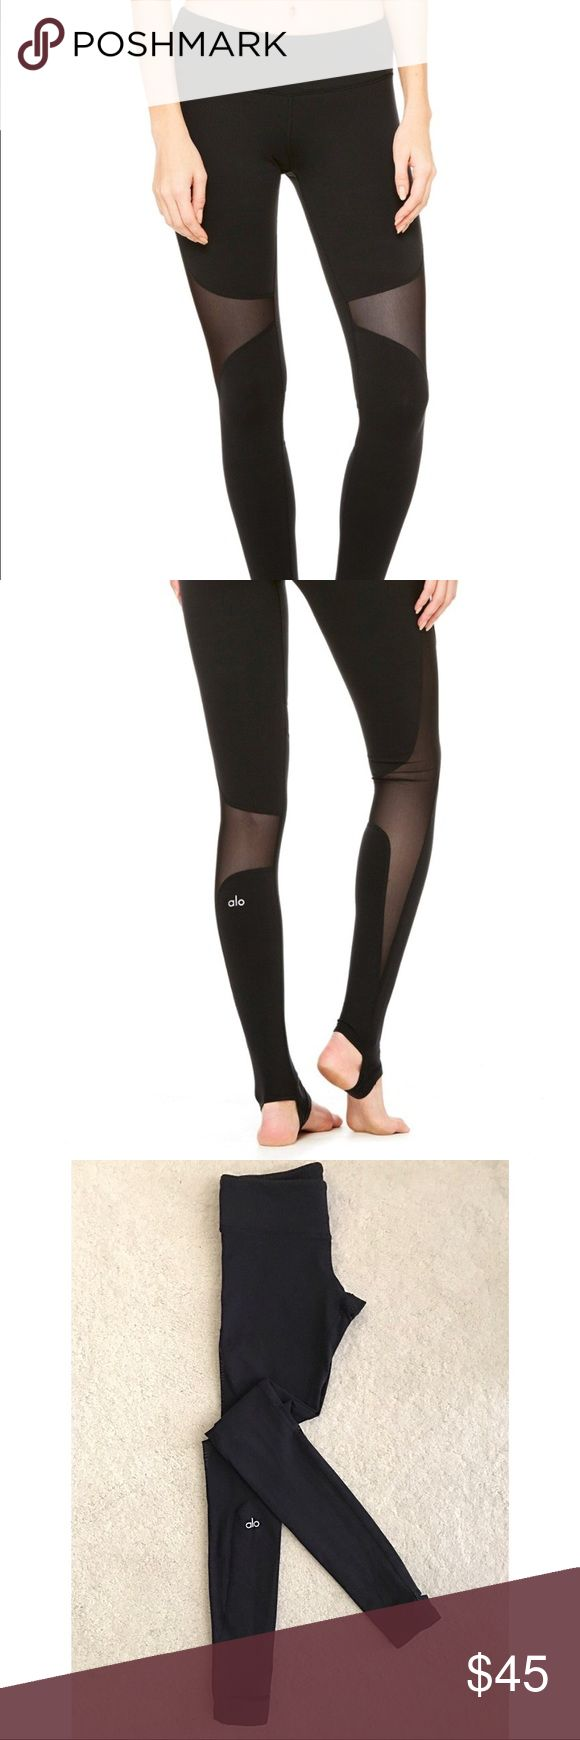 Alō Yoga Coast Legging Alō Yoga Coast Legging offers secure coverage with stirrup foot detail, smooth seams and contemporary mesh blocking at side of leg.   - Engineered to lift, sculpt, contour and smooth - 4-way-stretch fabric for a move-with-you feel - Moisture-wicking antimicrobial technology - Hidden key pocket  *Gently used • Non-smoking/Pet Free home ALO Yoga Pants Leggings